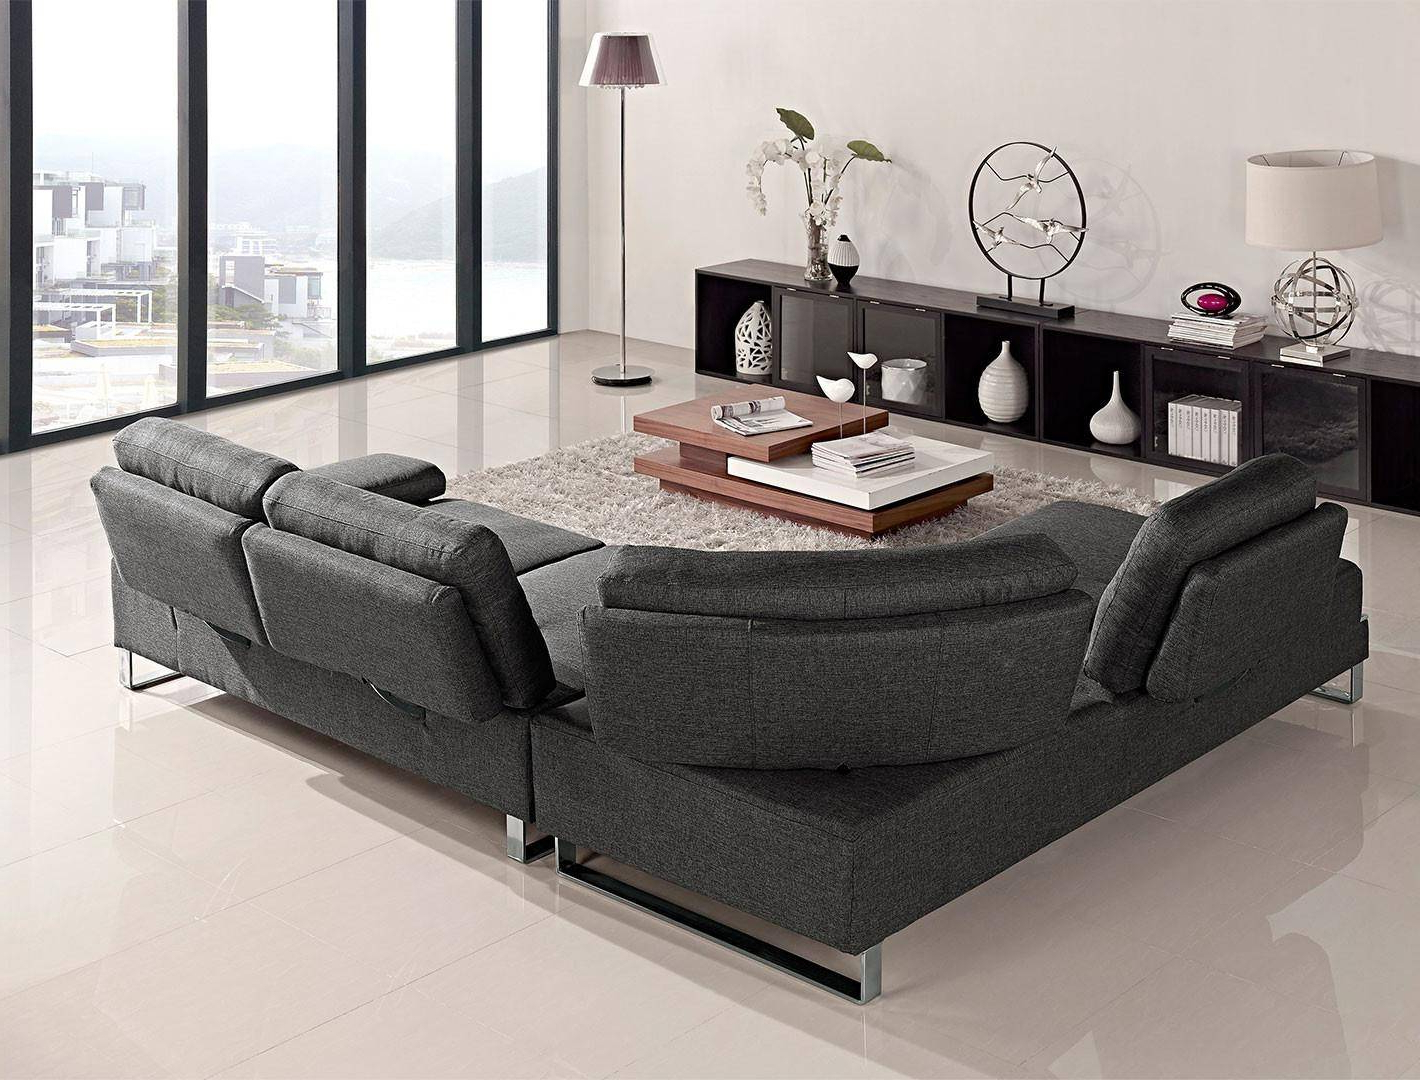 At Home Usa Verona Grey Fabric Ultra Modern Sectional Sofa Regarding Most Popular Sectional Sofas In Gray (View 14 of 20)